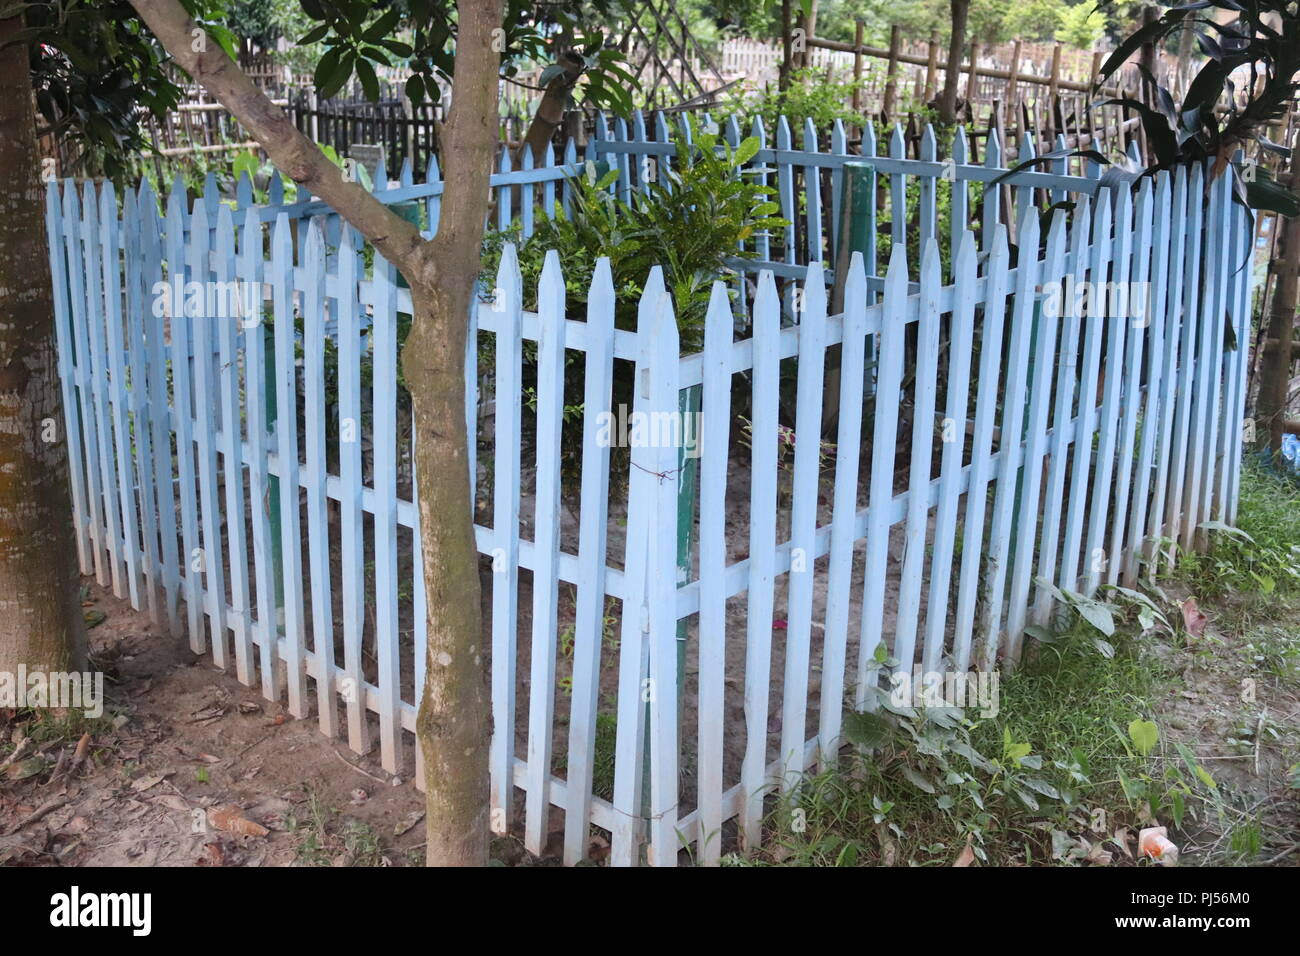 Bamboo Fencing Stock Photos & Bamboo Fencing Stock Images - Alamy